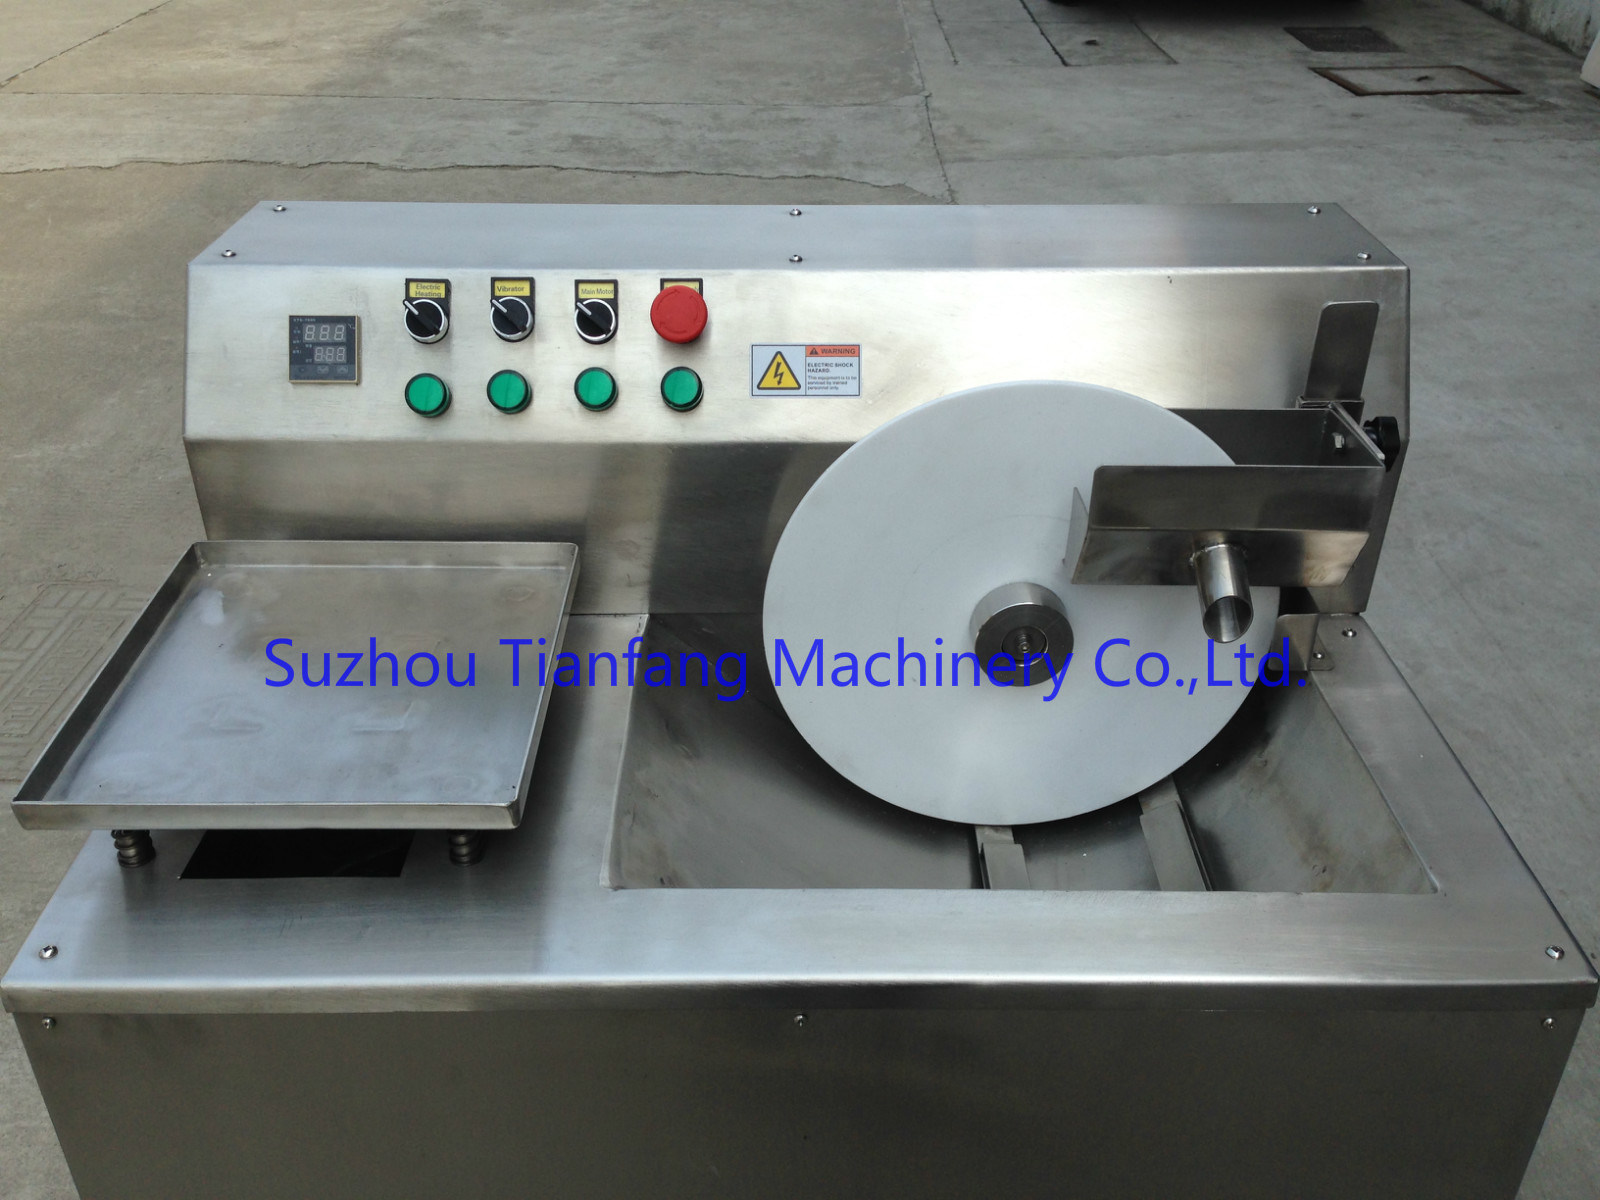 Manual Chocolate Making Machine for Small Scale Production